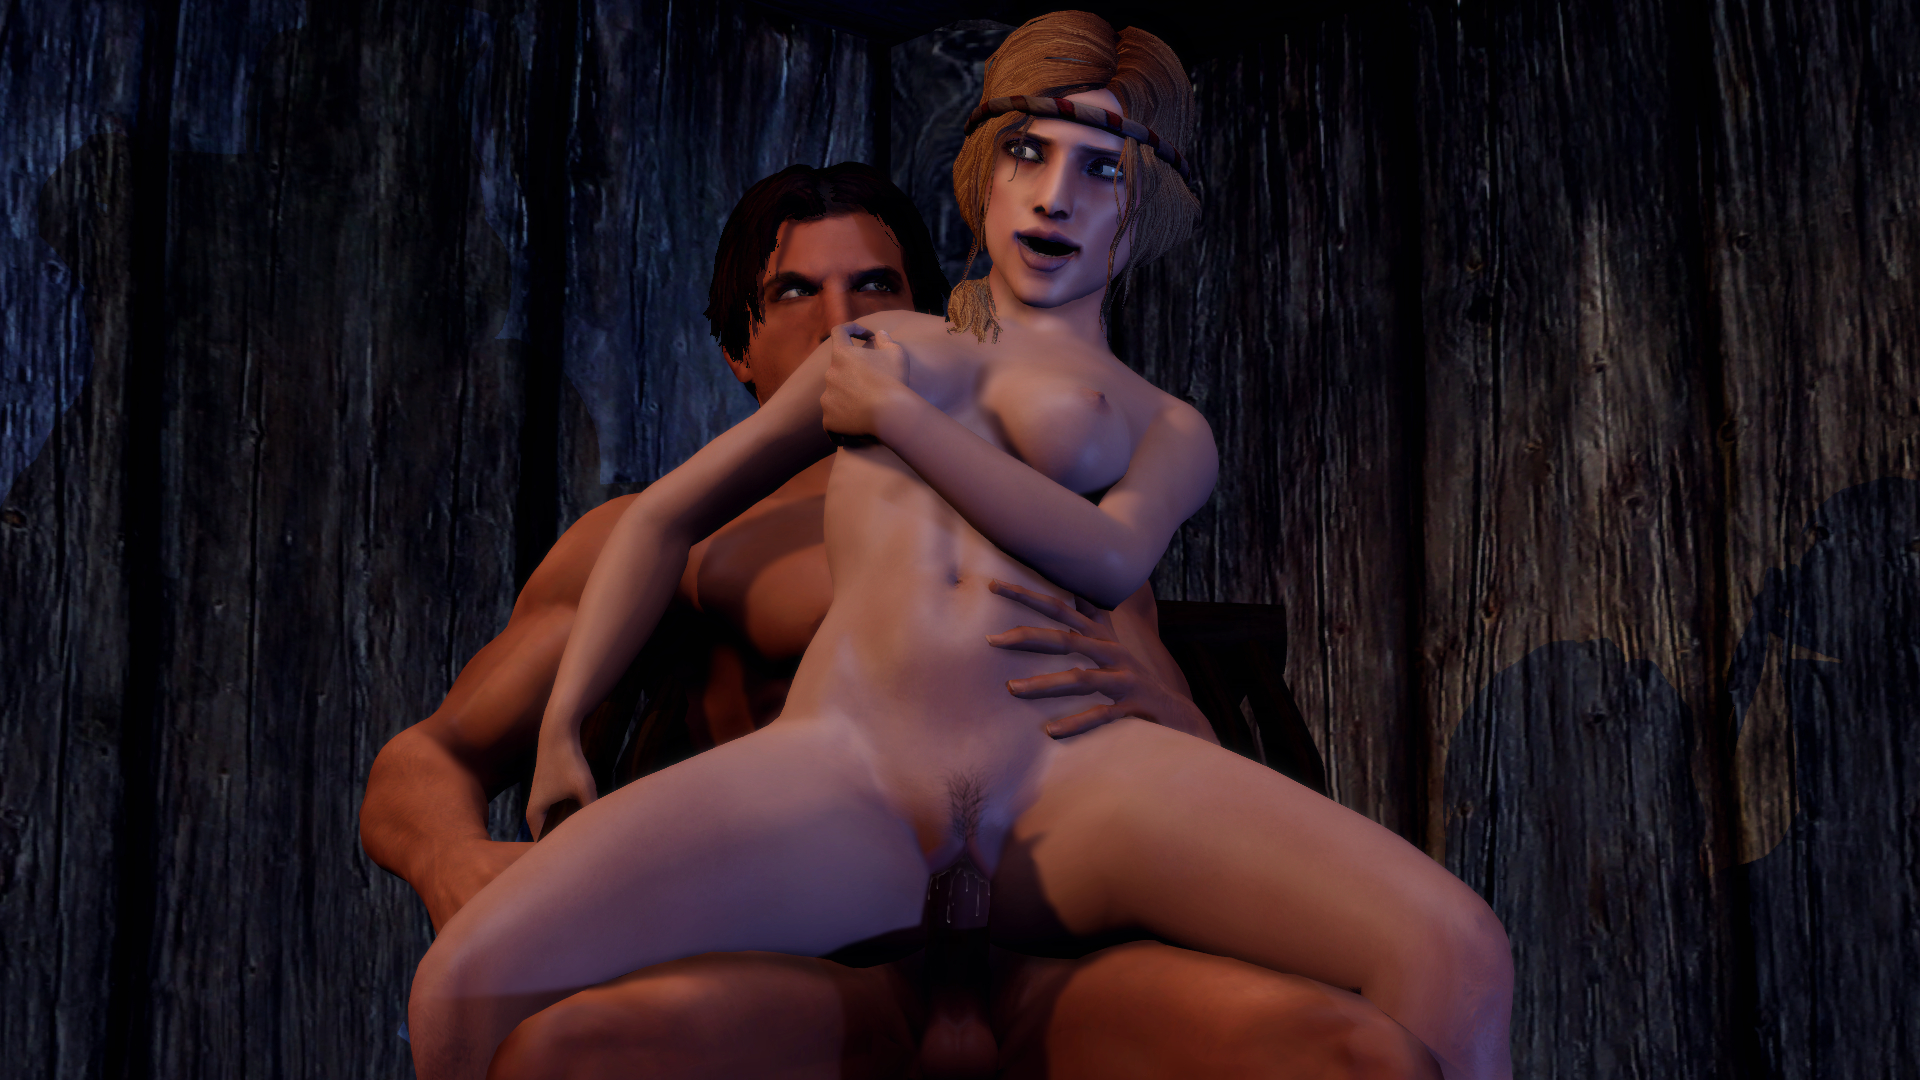 Assassin s creed sex scene pics sexy videos